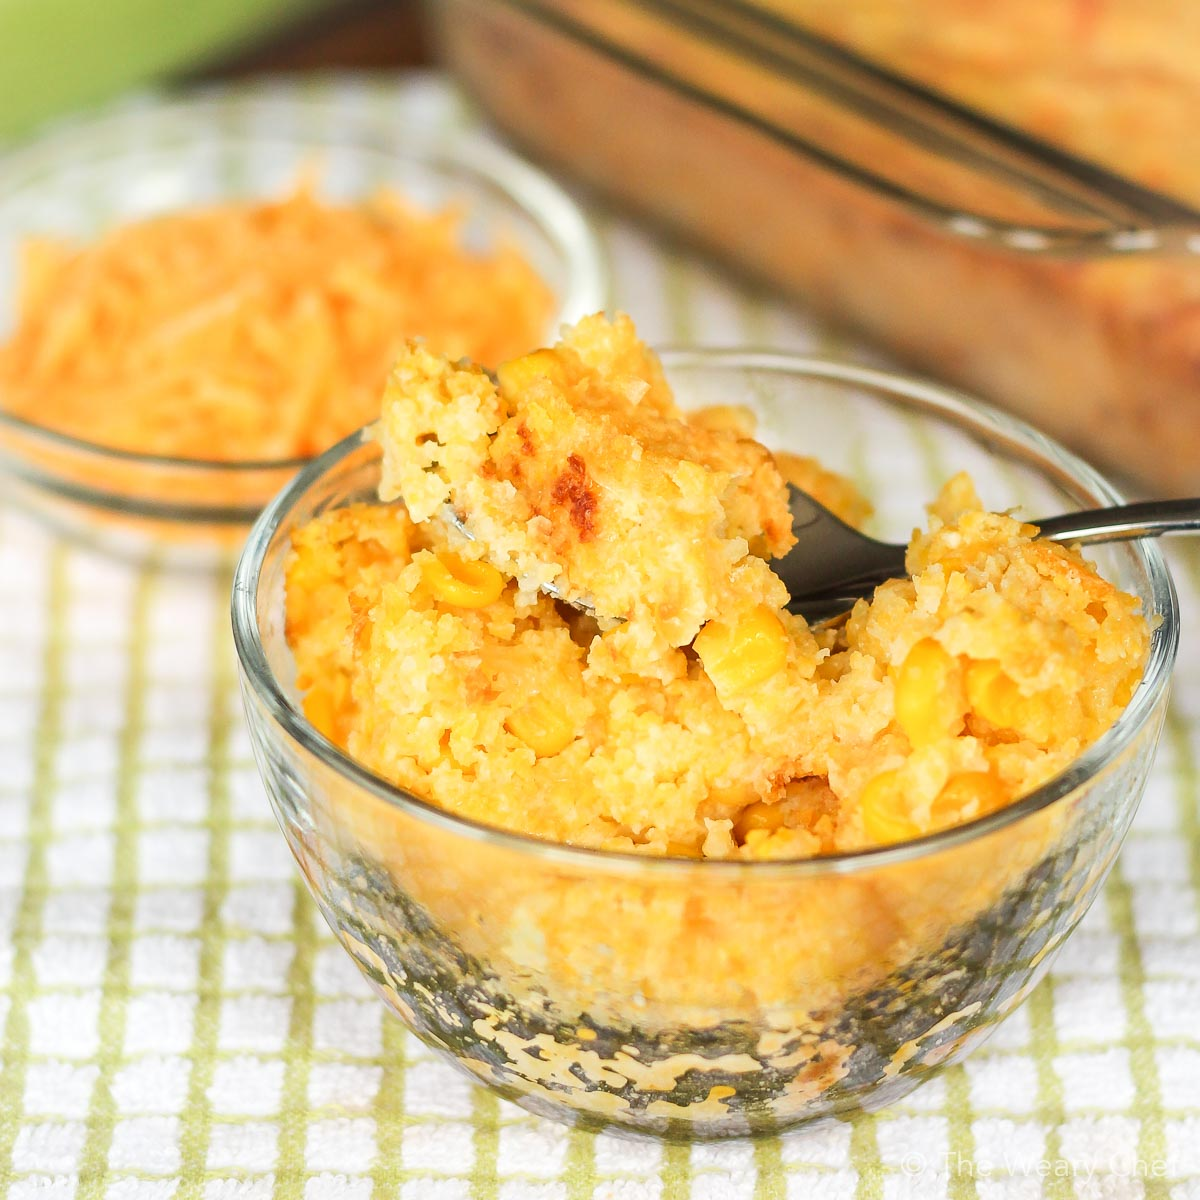 This old-fashioned Sweet Corn Pudding is a great holiday side dish, or pair it with pork or chicken any time of year!